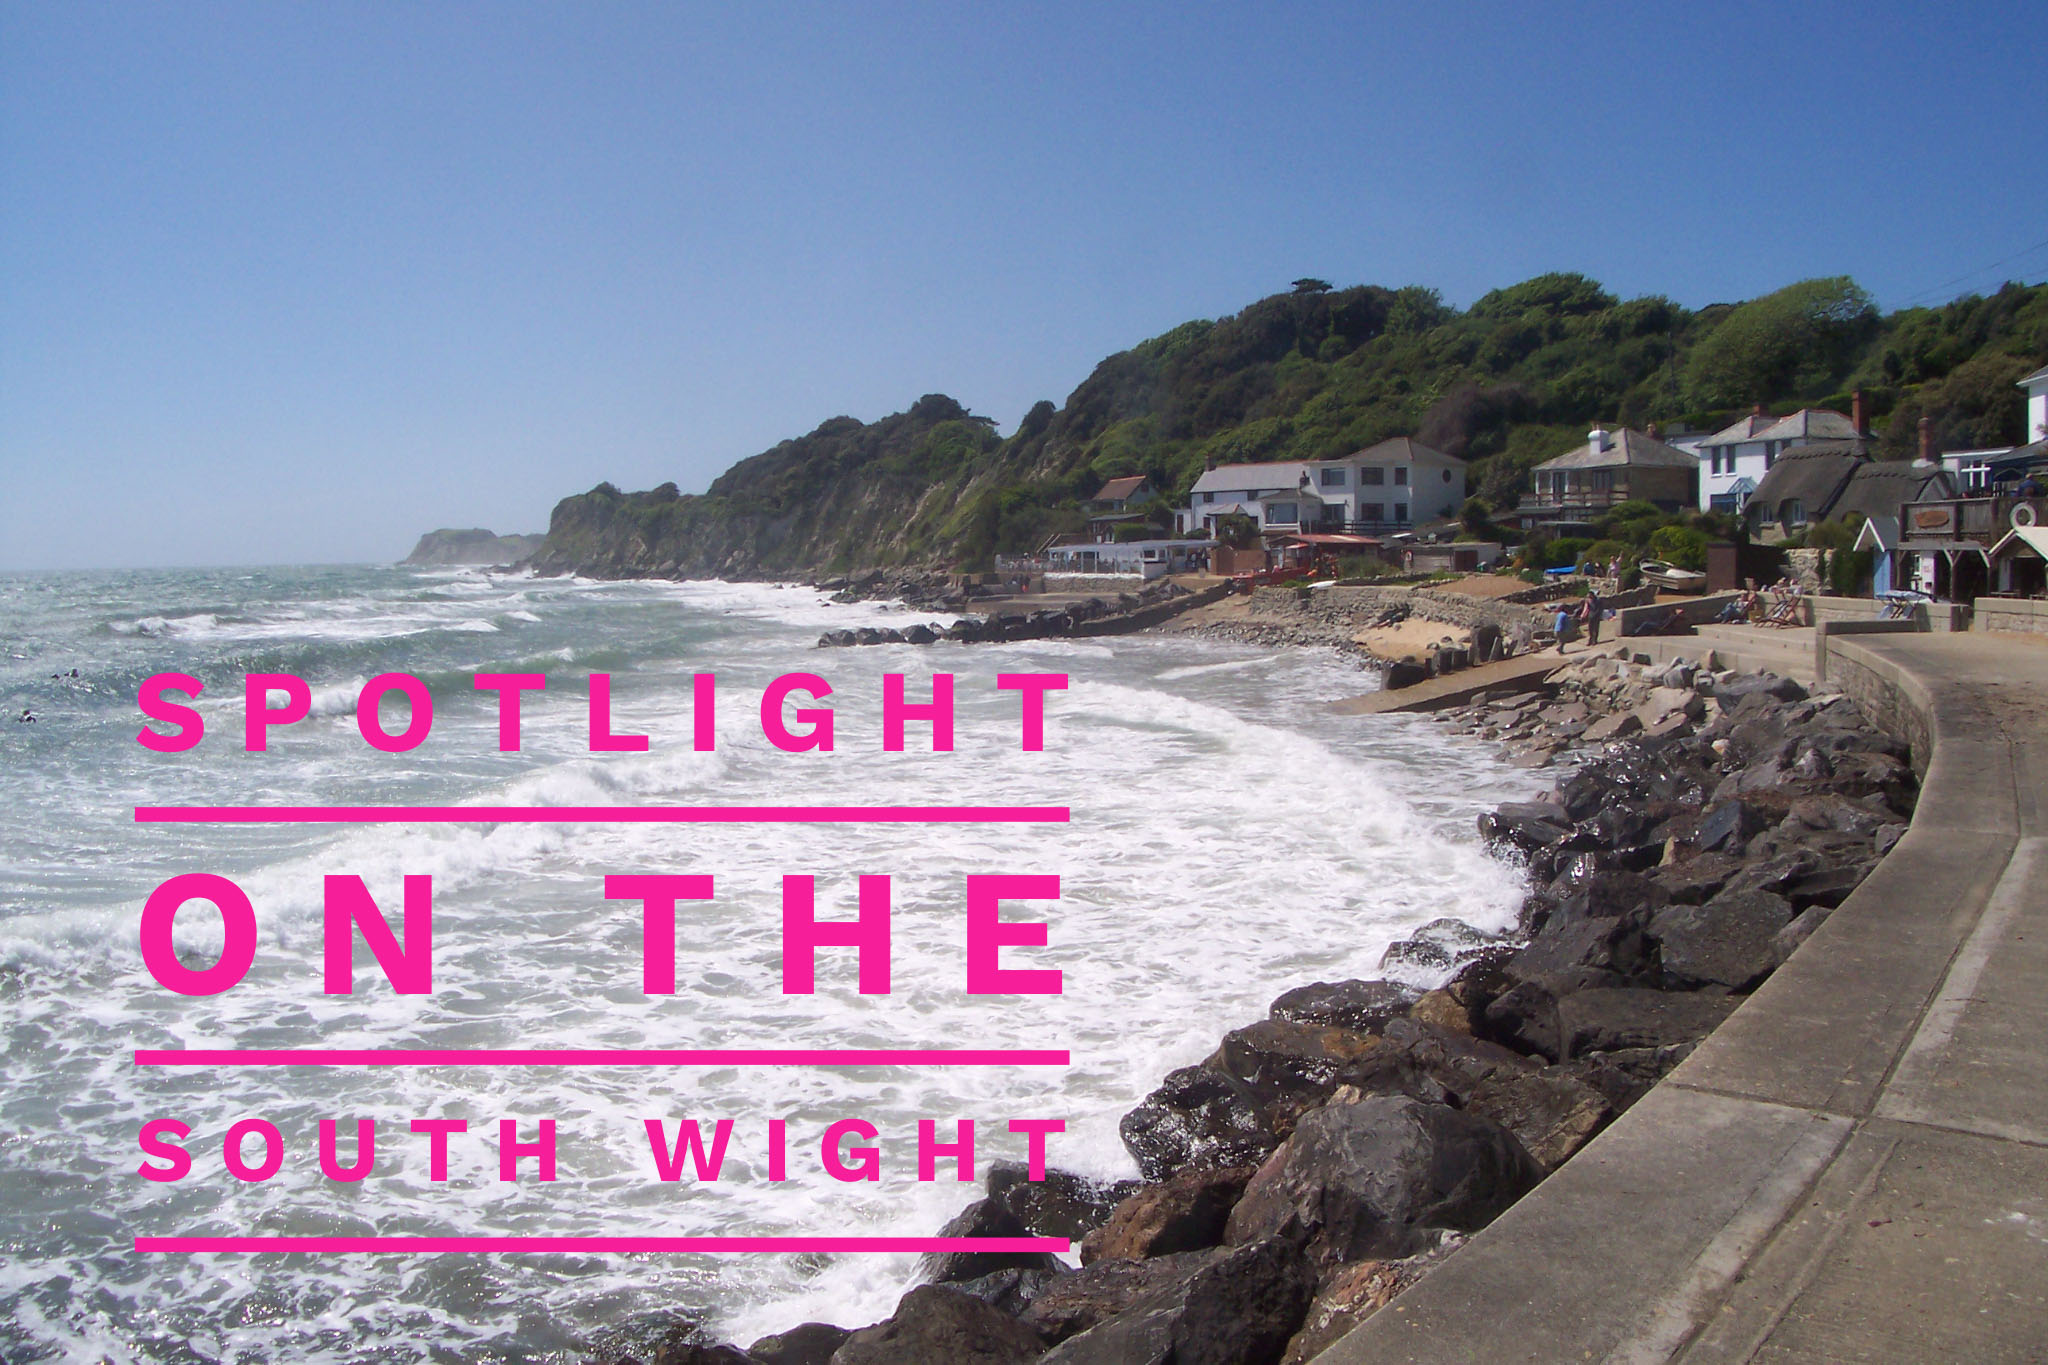 Isle of Wight Newsletter Spotlight on South Wight